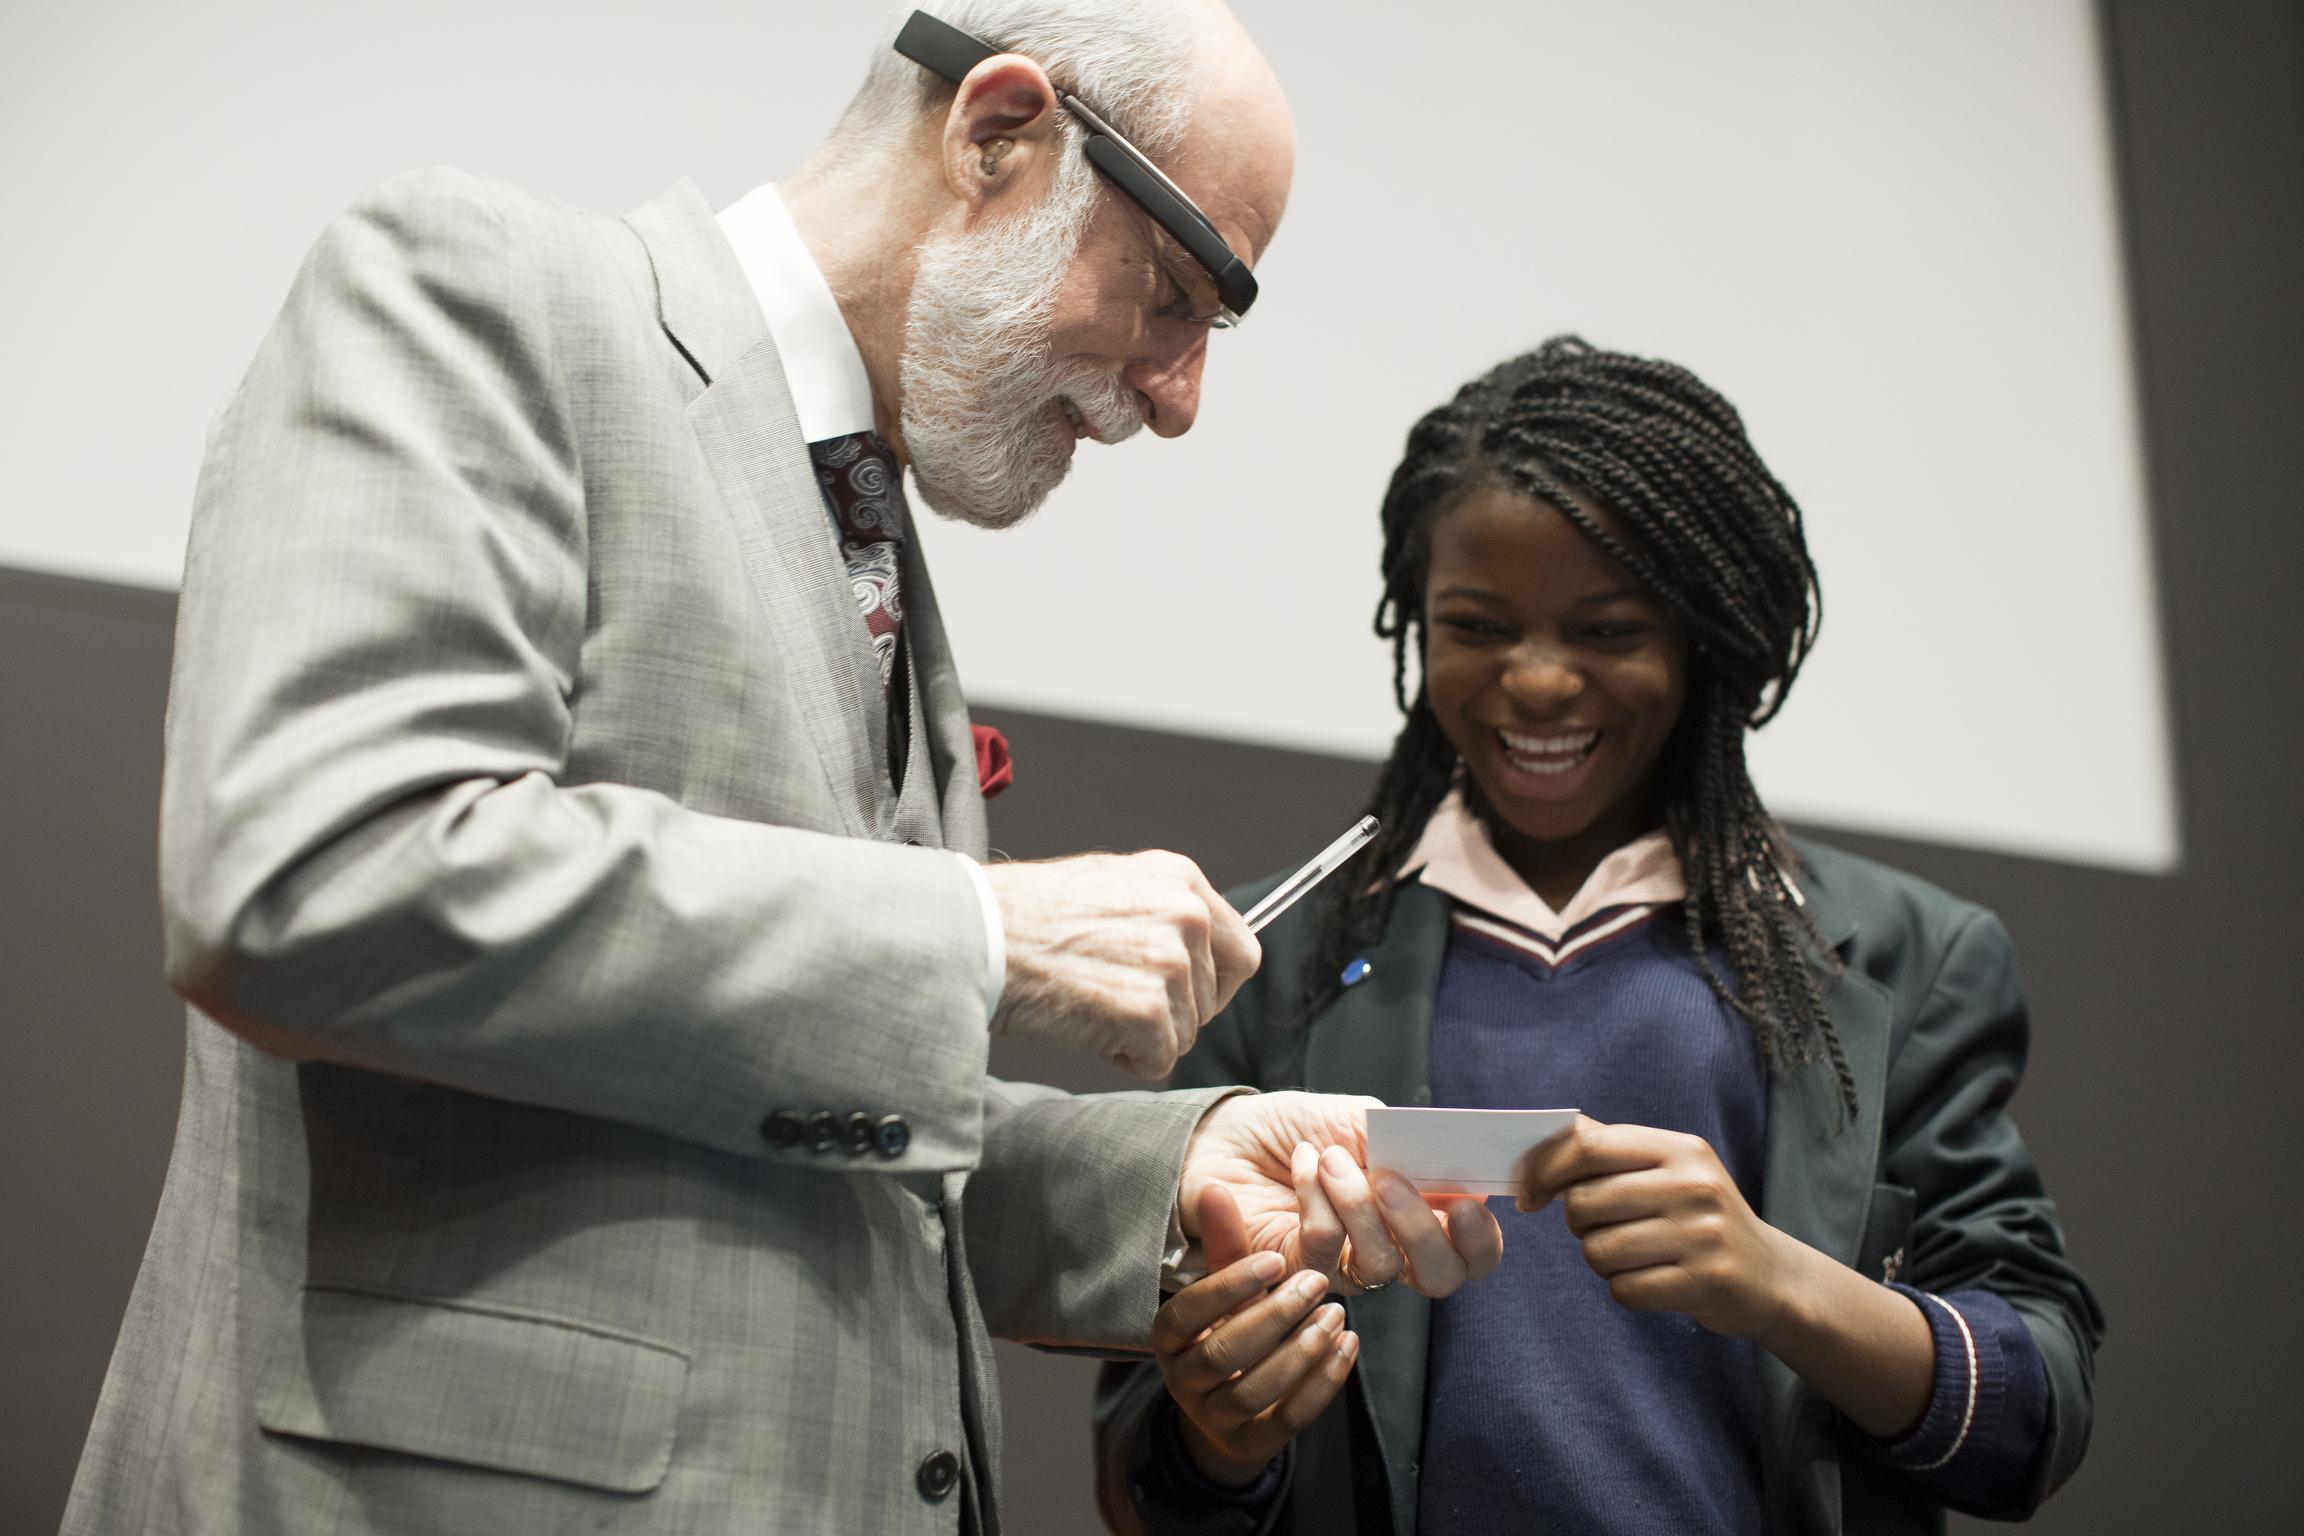 QEPrize winner, Vint Cerf at a schools' event encouraging young people to think about engineering